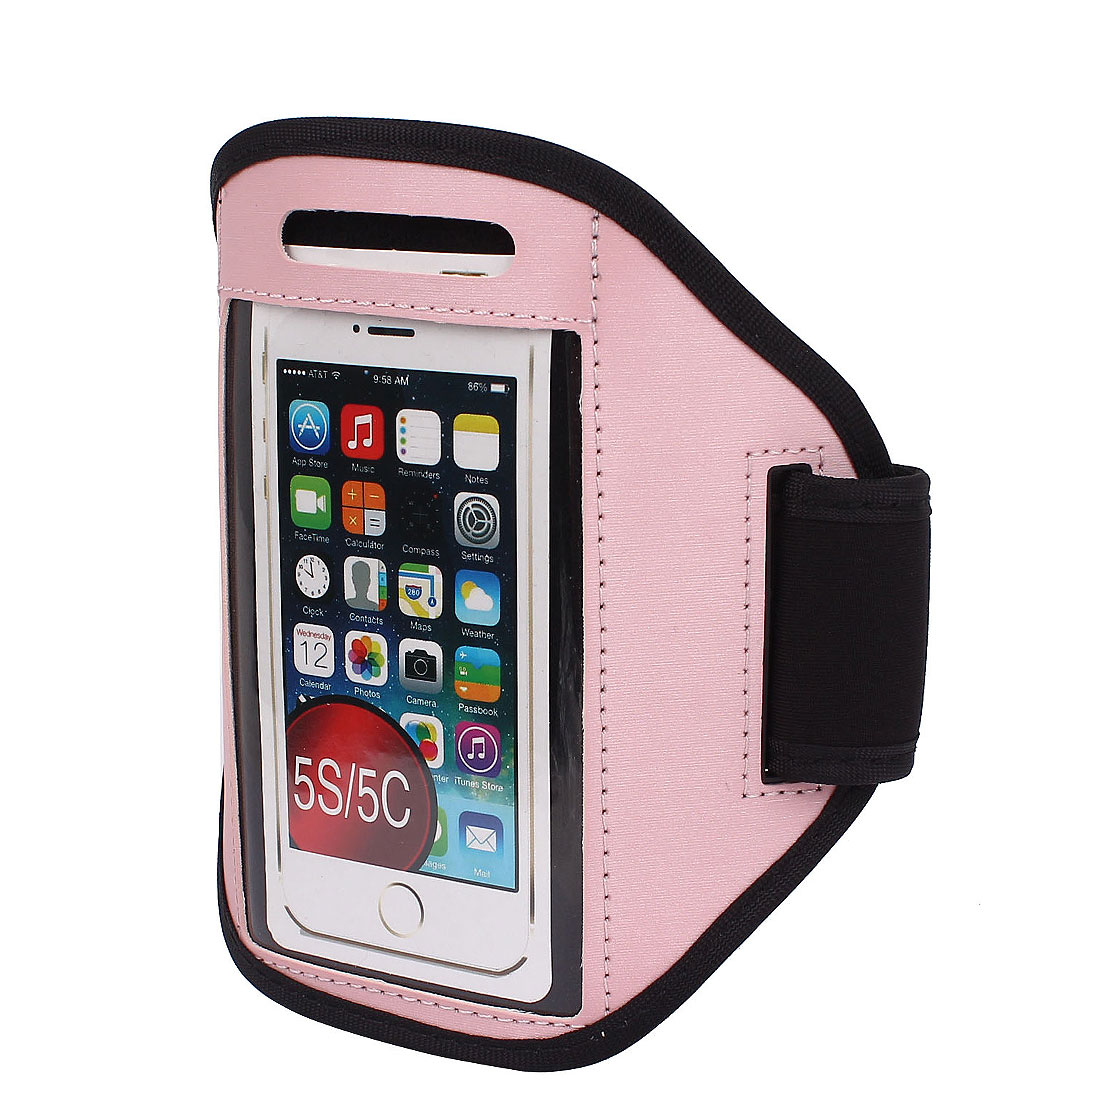 Sports Running Jogging Gym Armband Case Cover Holder Pink for iPhone 5 5C 5S